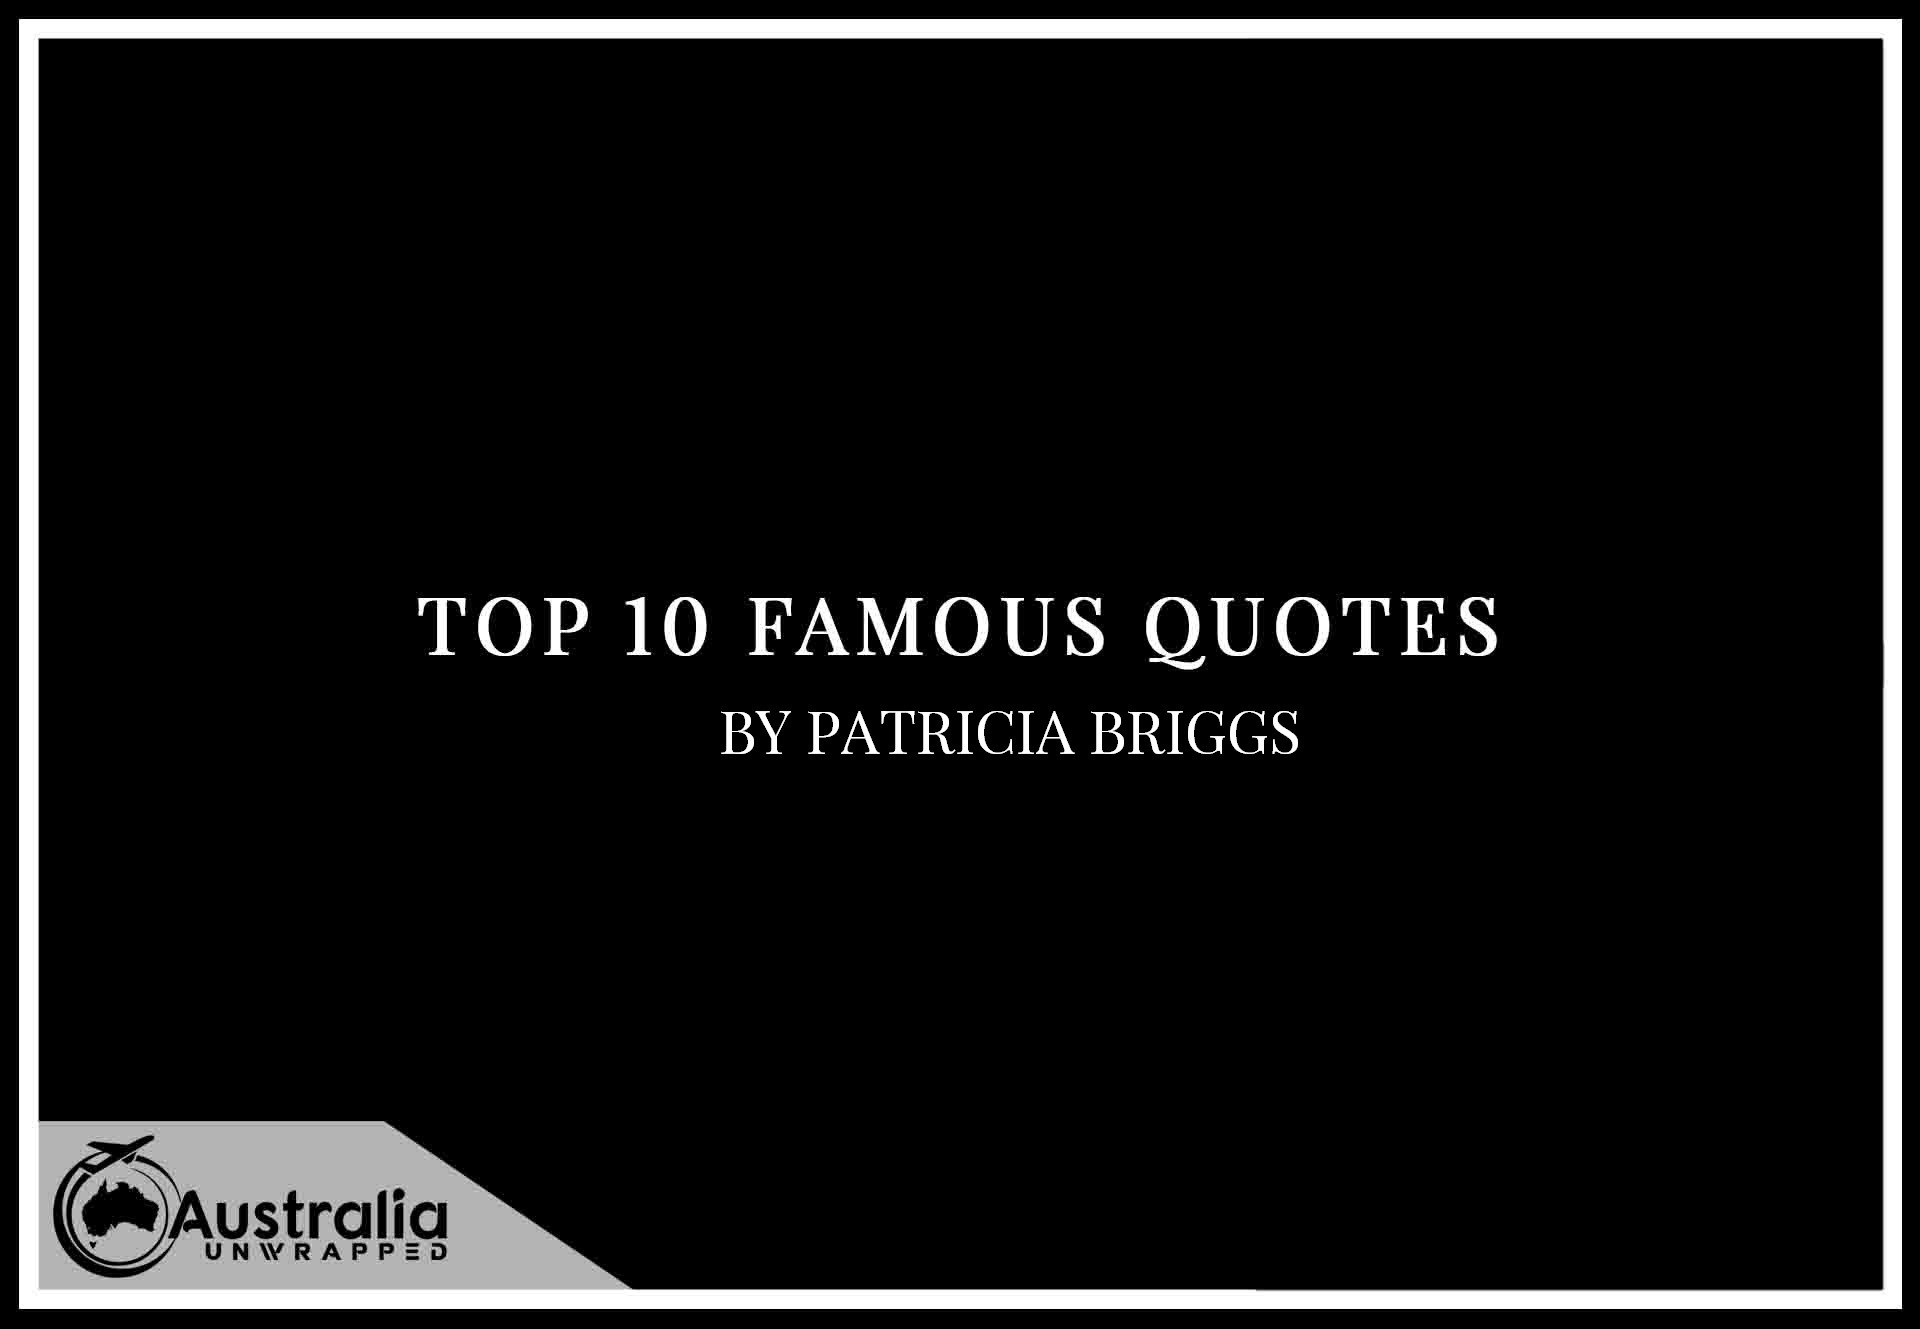 Top 10 Famous Quotes by Author Patricia Briggs